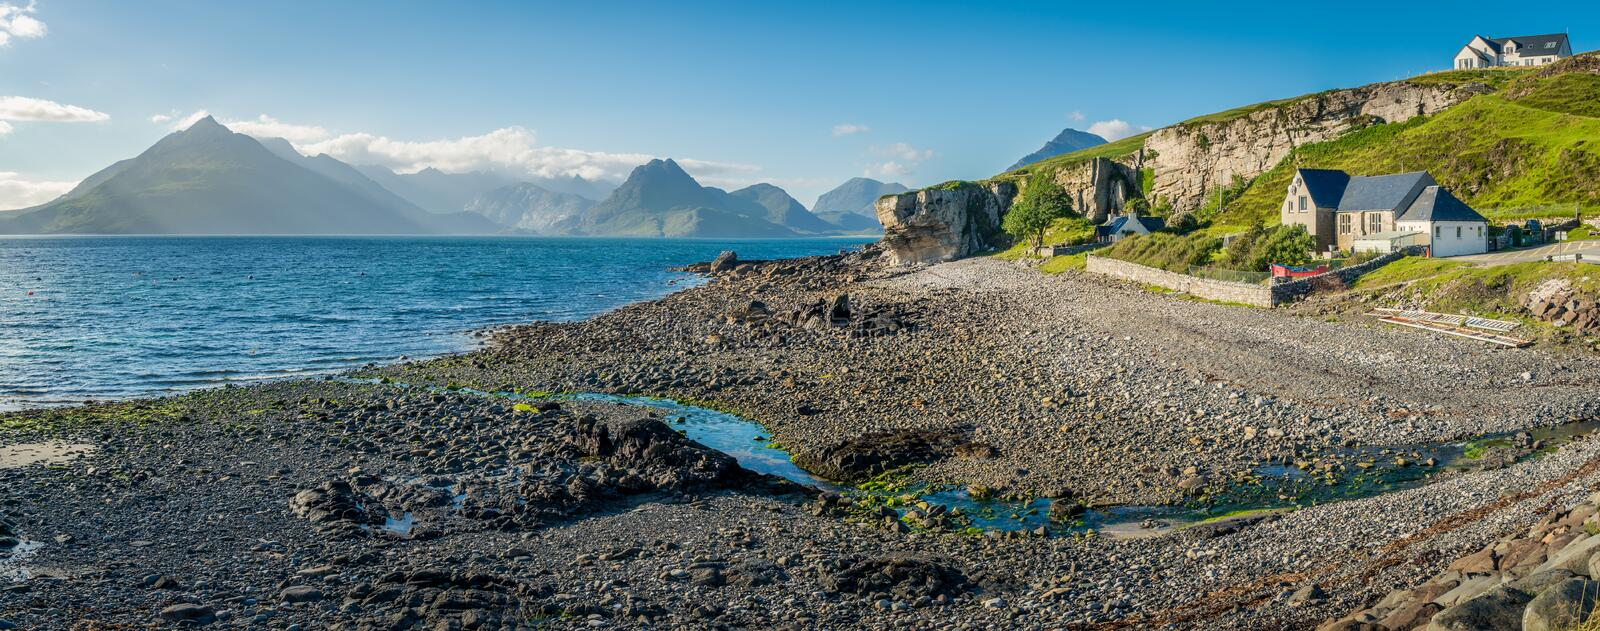 Elgol, village on the shores of Loch Scavaig towards the end of the Strathaird peninsula in the Isle of Skye, in the Scottish High. Elgol is a village on the stock photography